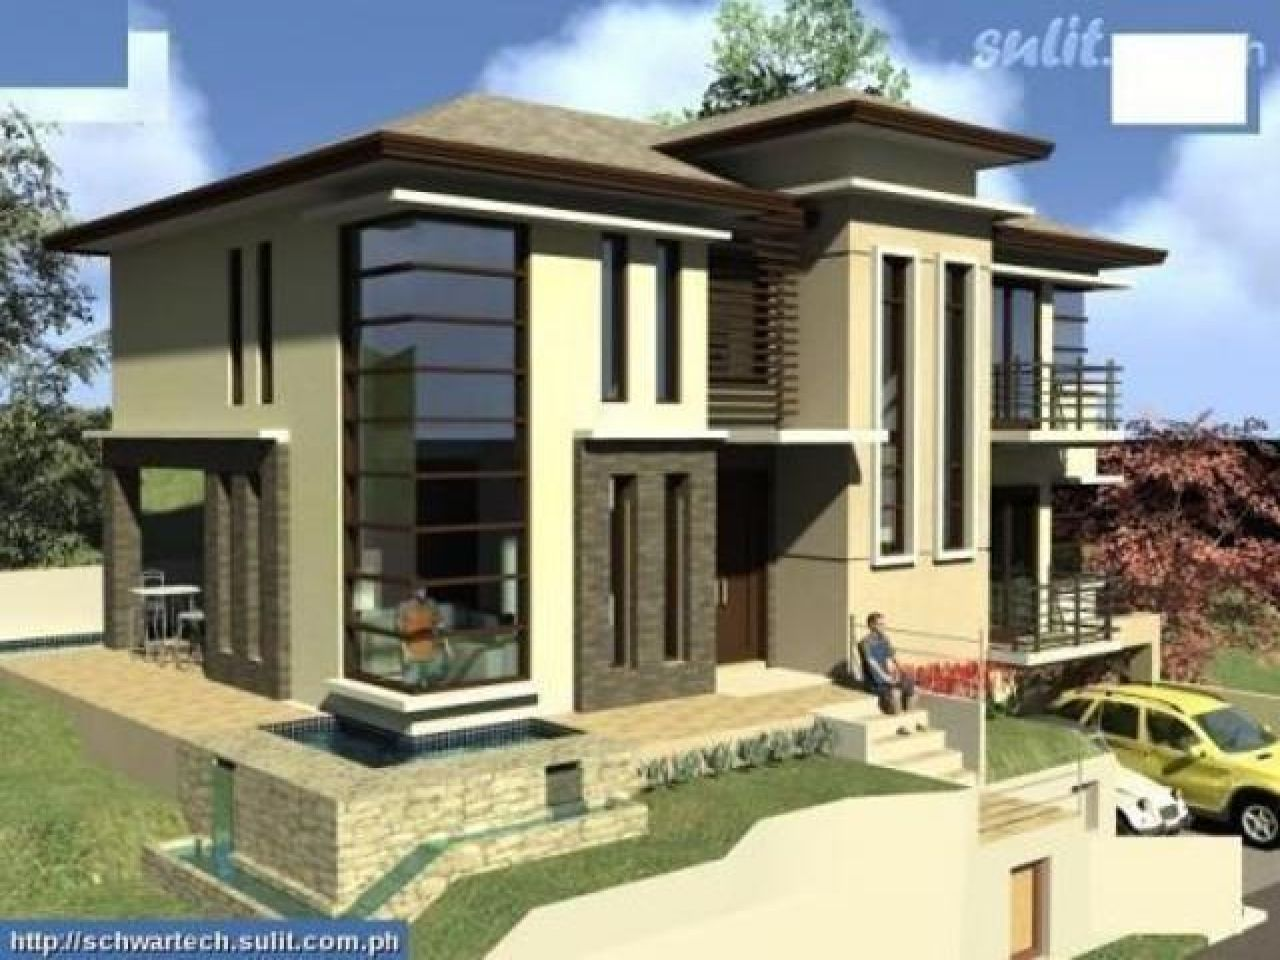 Zen Home Design Decoration Interior And Exterior House   Wxcan zen Lots Of Windows With Exterior House Designs Philippines on house designs with 2 bedrooms, house designs with tile floors, mountain house a lot of windows, 2 storey house with windows, house designs with wood floors, house designs with balcony, house designs with vaulted ceilings, house with attached garage on sloped lot, house designs with large kitchen, house plans with windows, house designs with pillars, house designs with carport, house designs with walk in closets,